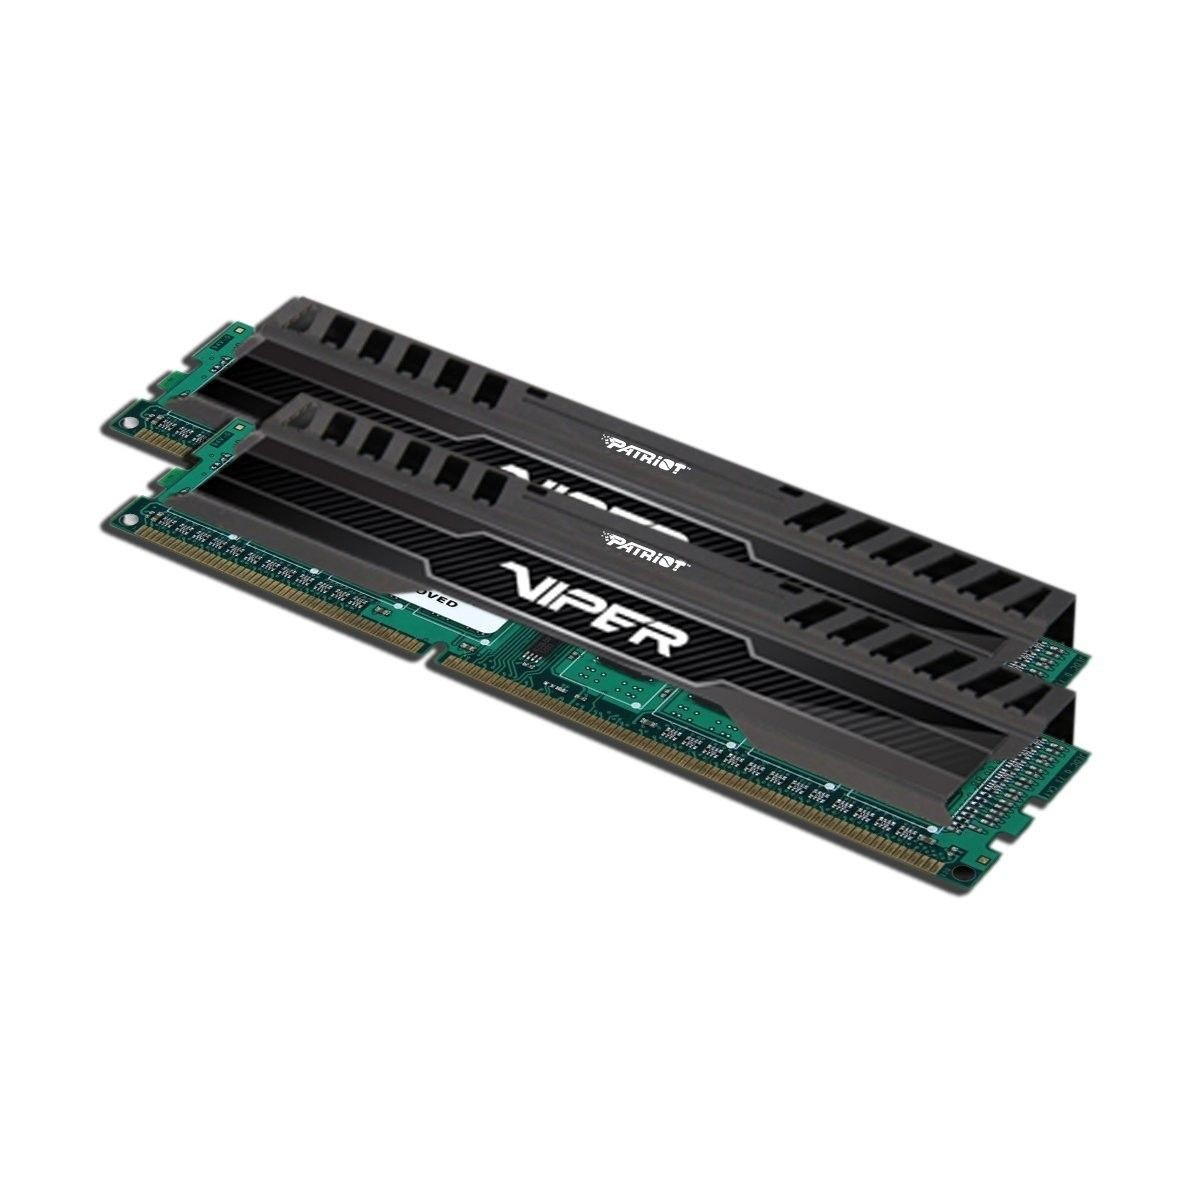 Patriot ViperX 3RD 2x8GB DDR3 1600MHz CL10 1.5V, XMP 1.3 Dual Channel